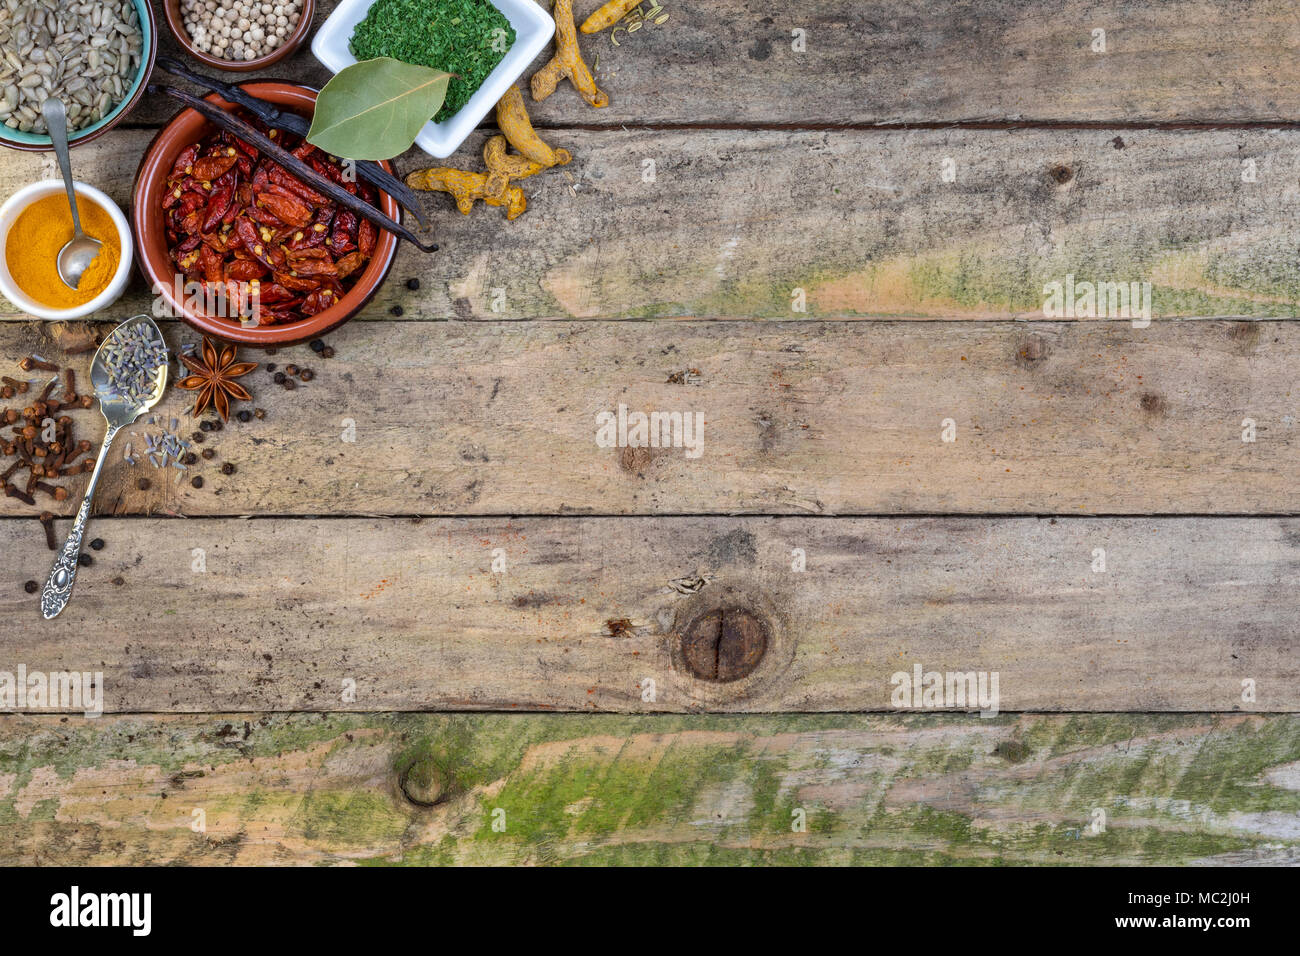 Herbs and Spices with space for text on rustic tabletop. - Stock Image